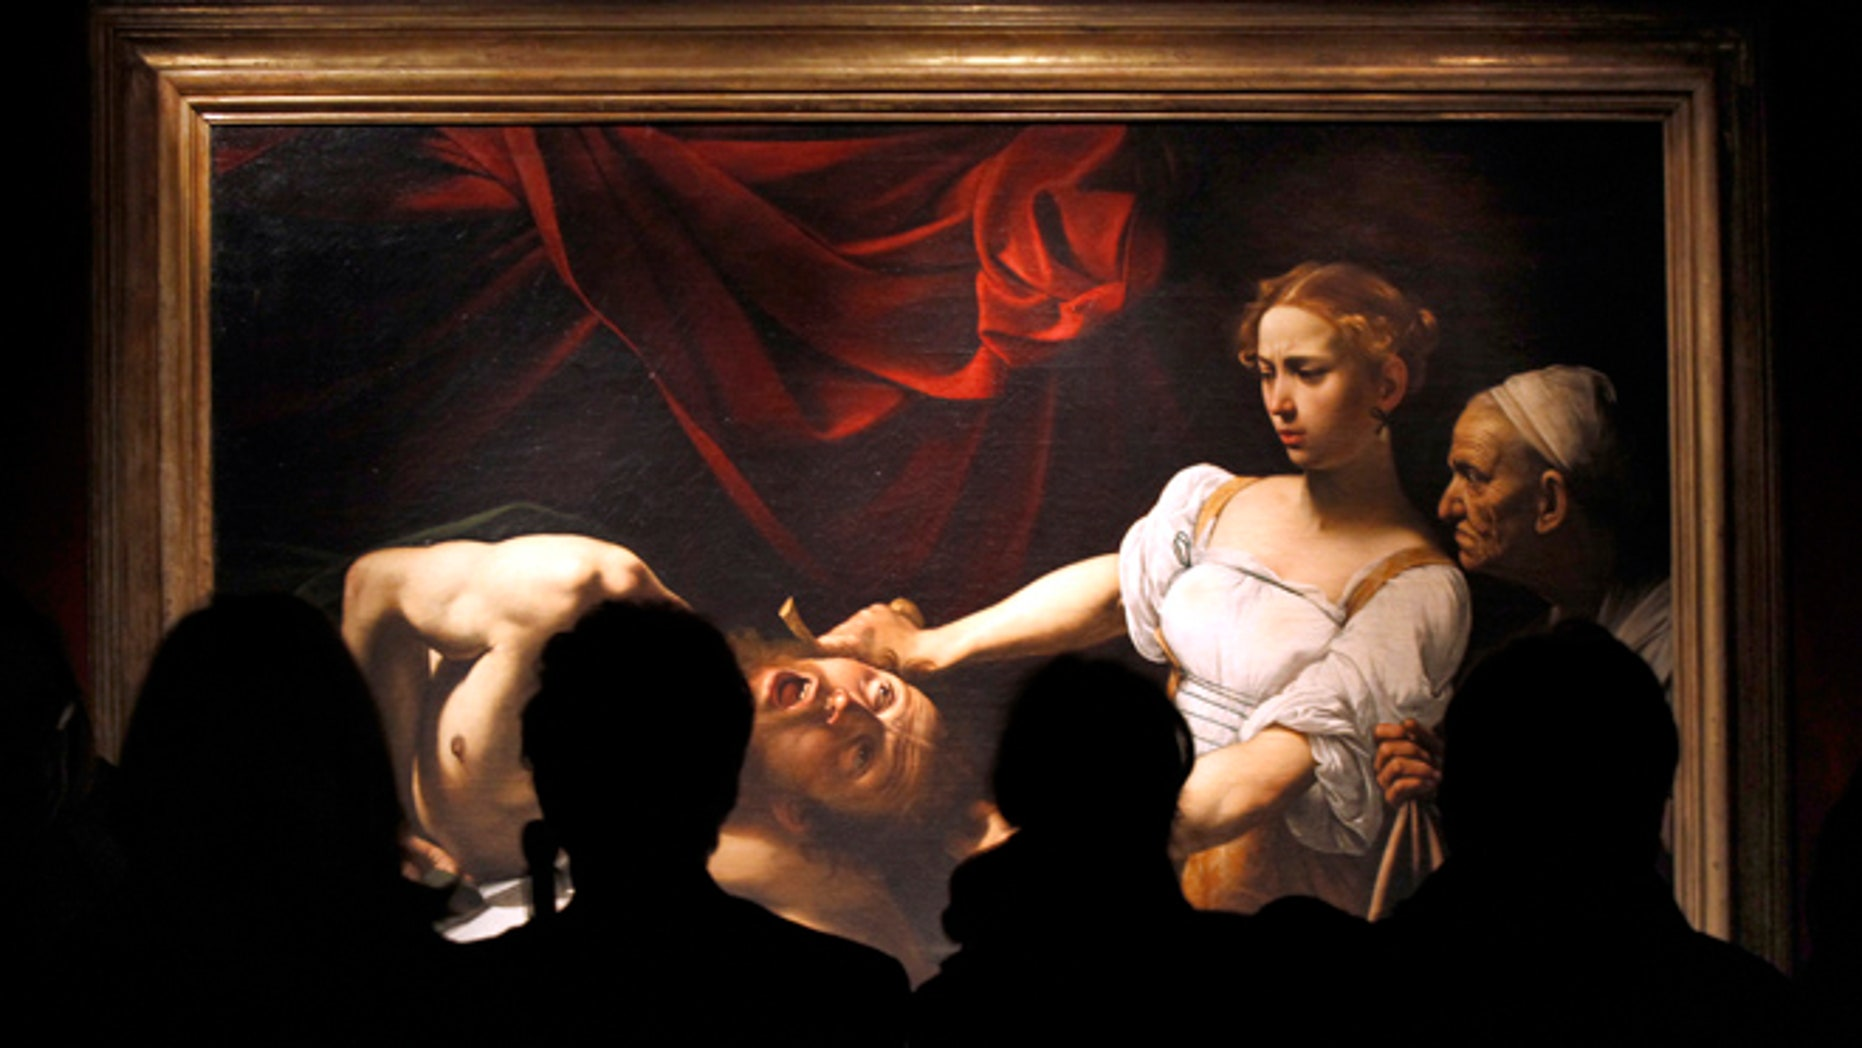 "FILE 2010: Visitors stand near Caravaggio's ""Judith Beheading Holofernes"" painting during an exhibition to celebrate the Baroque master on the 400th anniversary of his death at the Scuderie del Quirinale building in Rome."